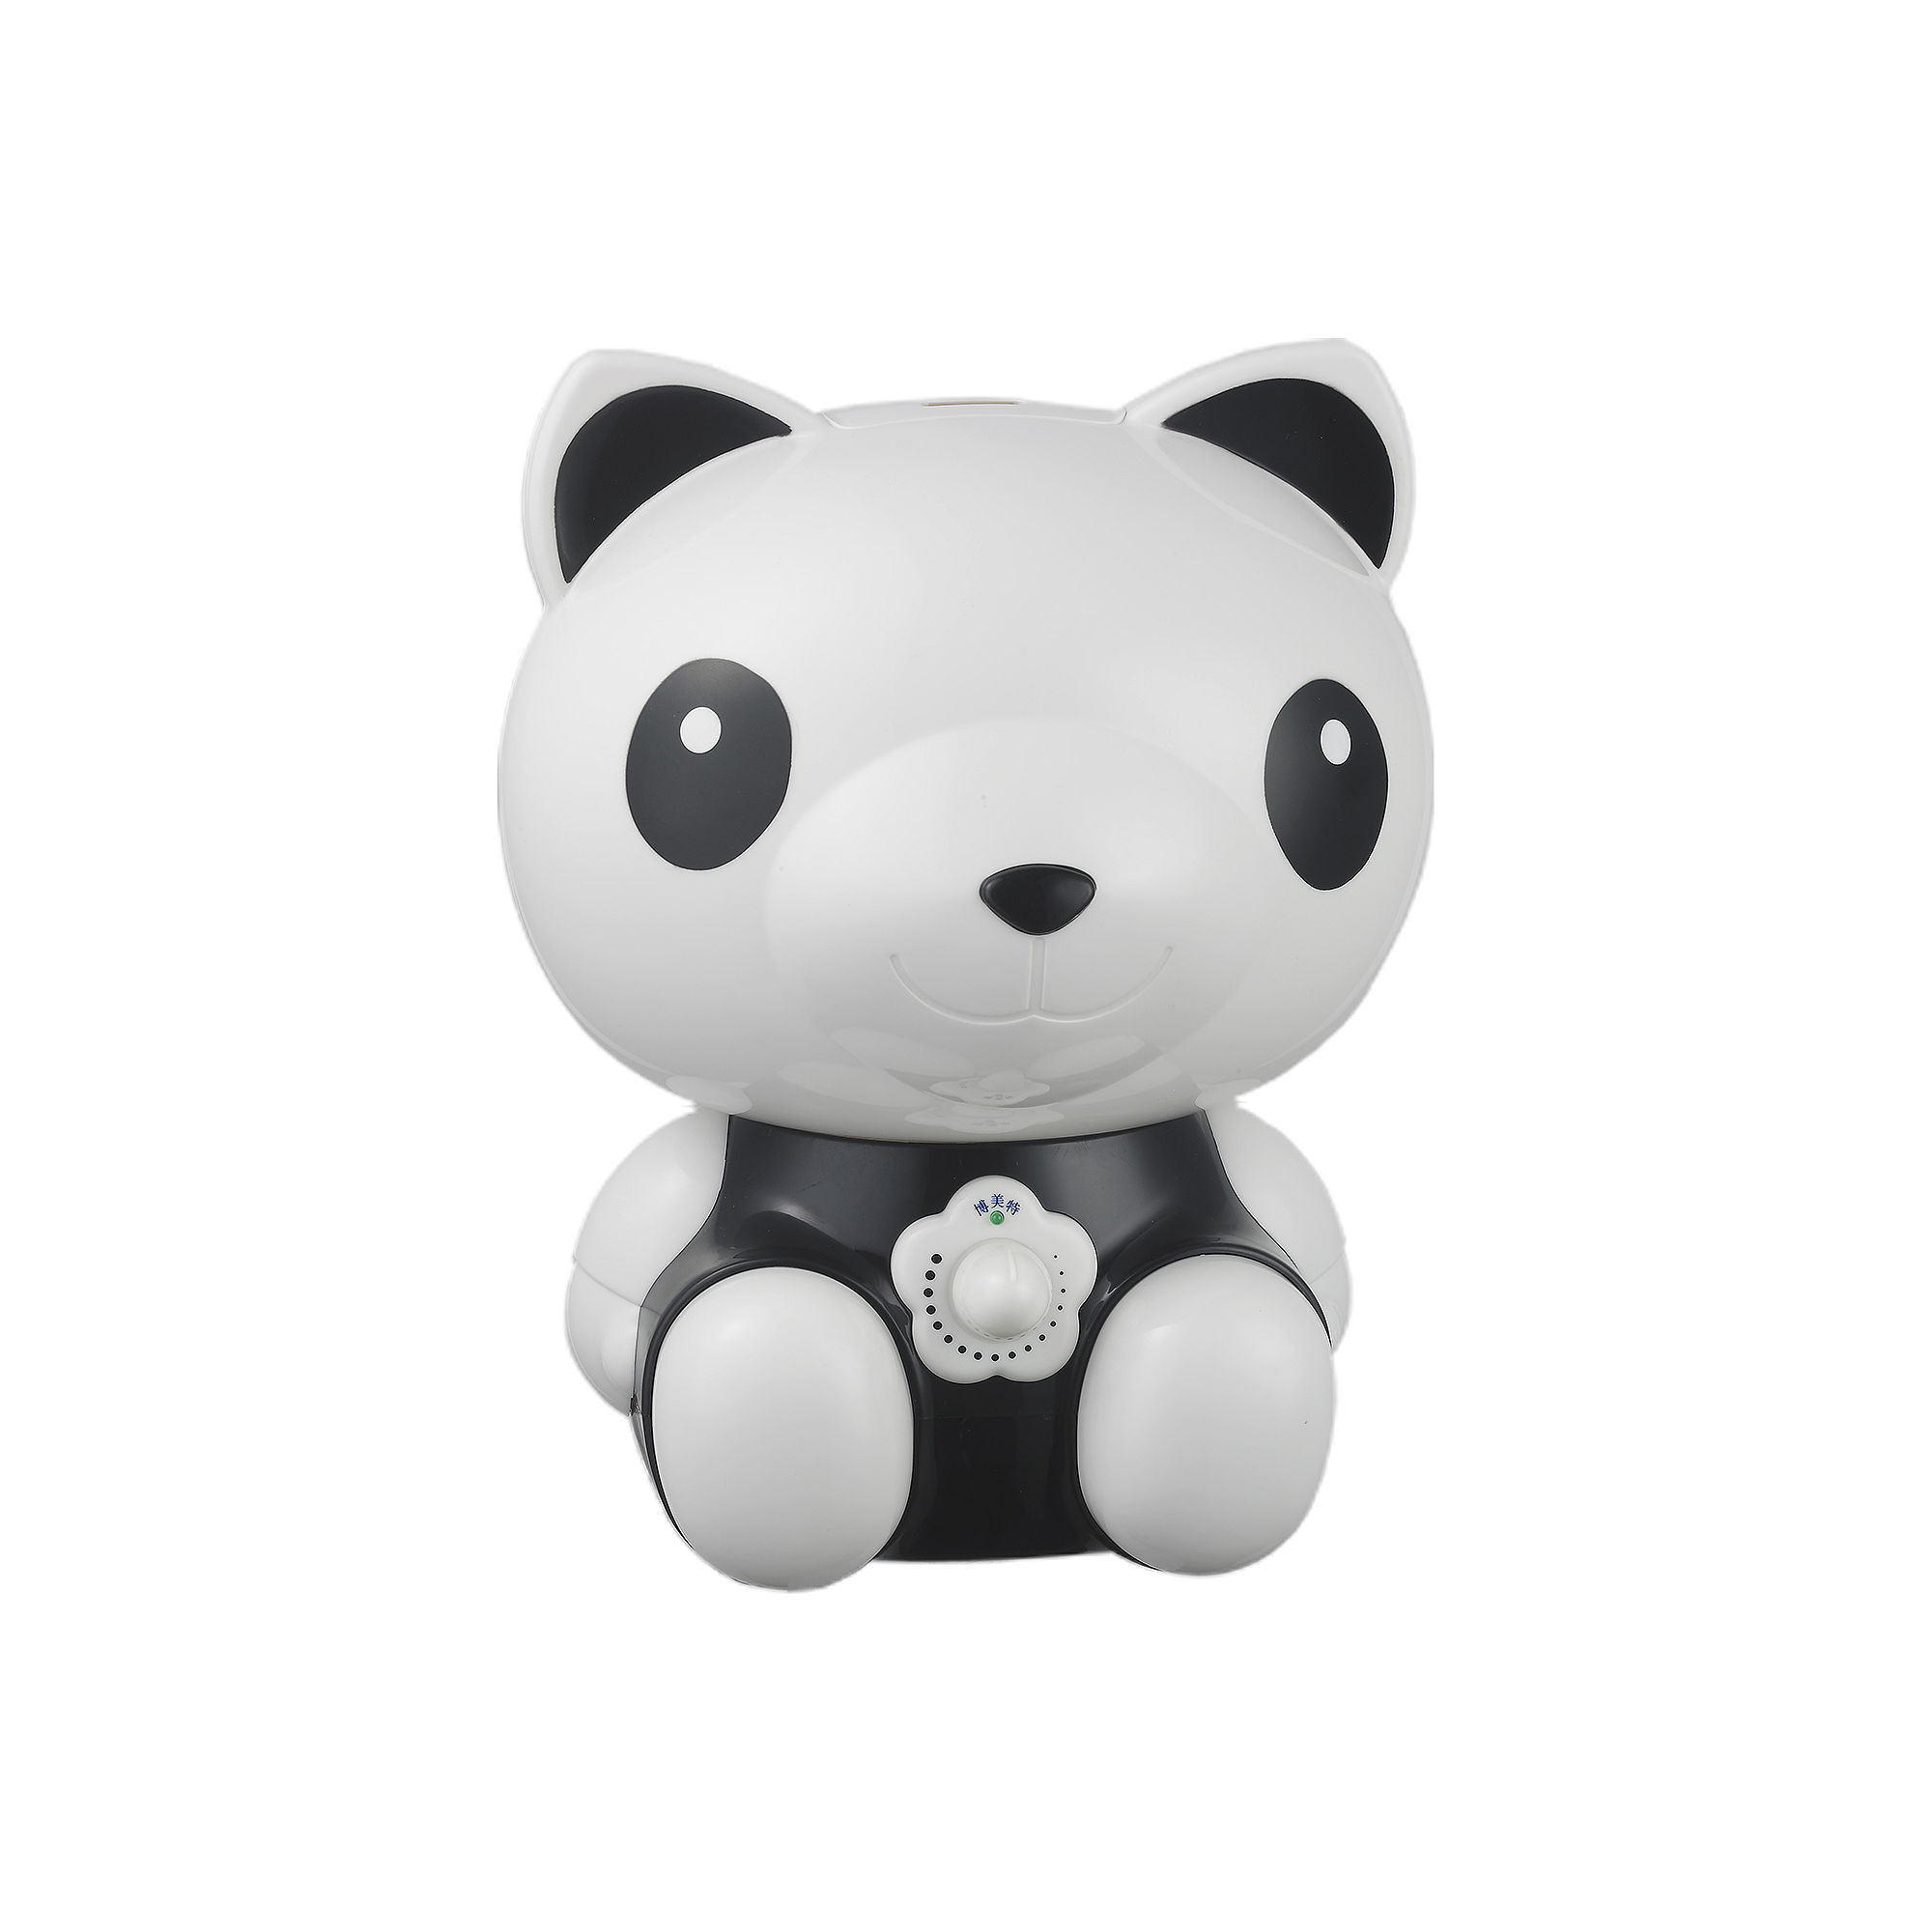 SPT SU-3883: Panda Ultrasonic Humidifier